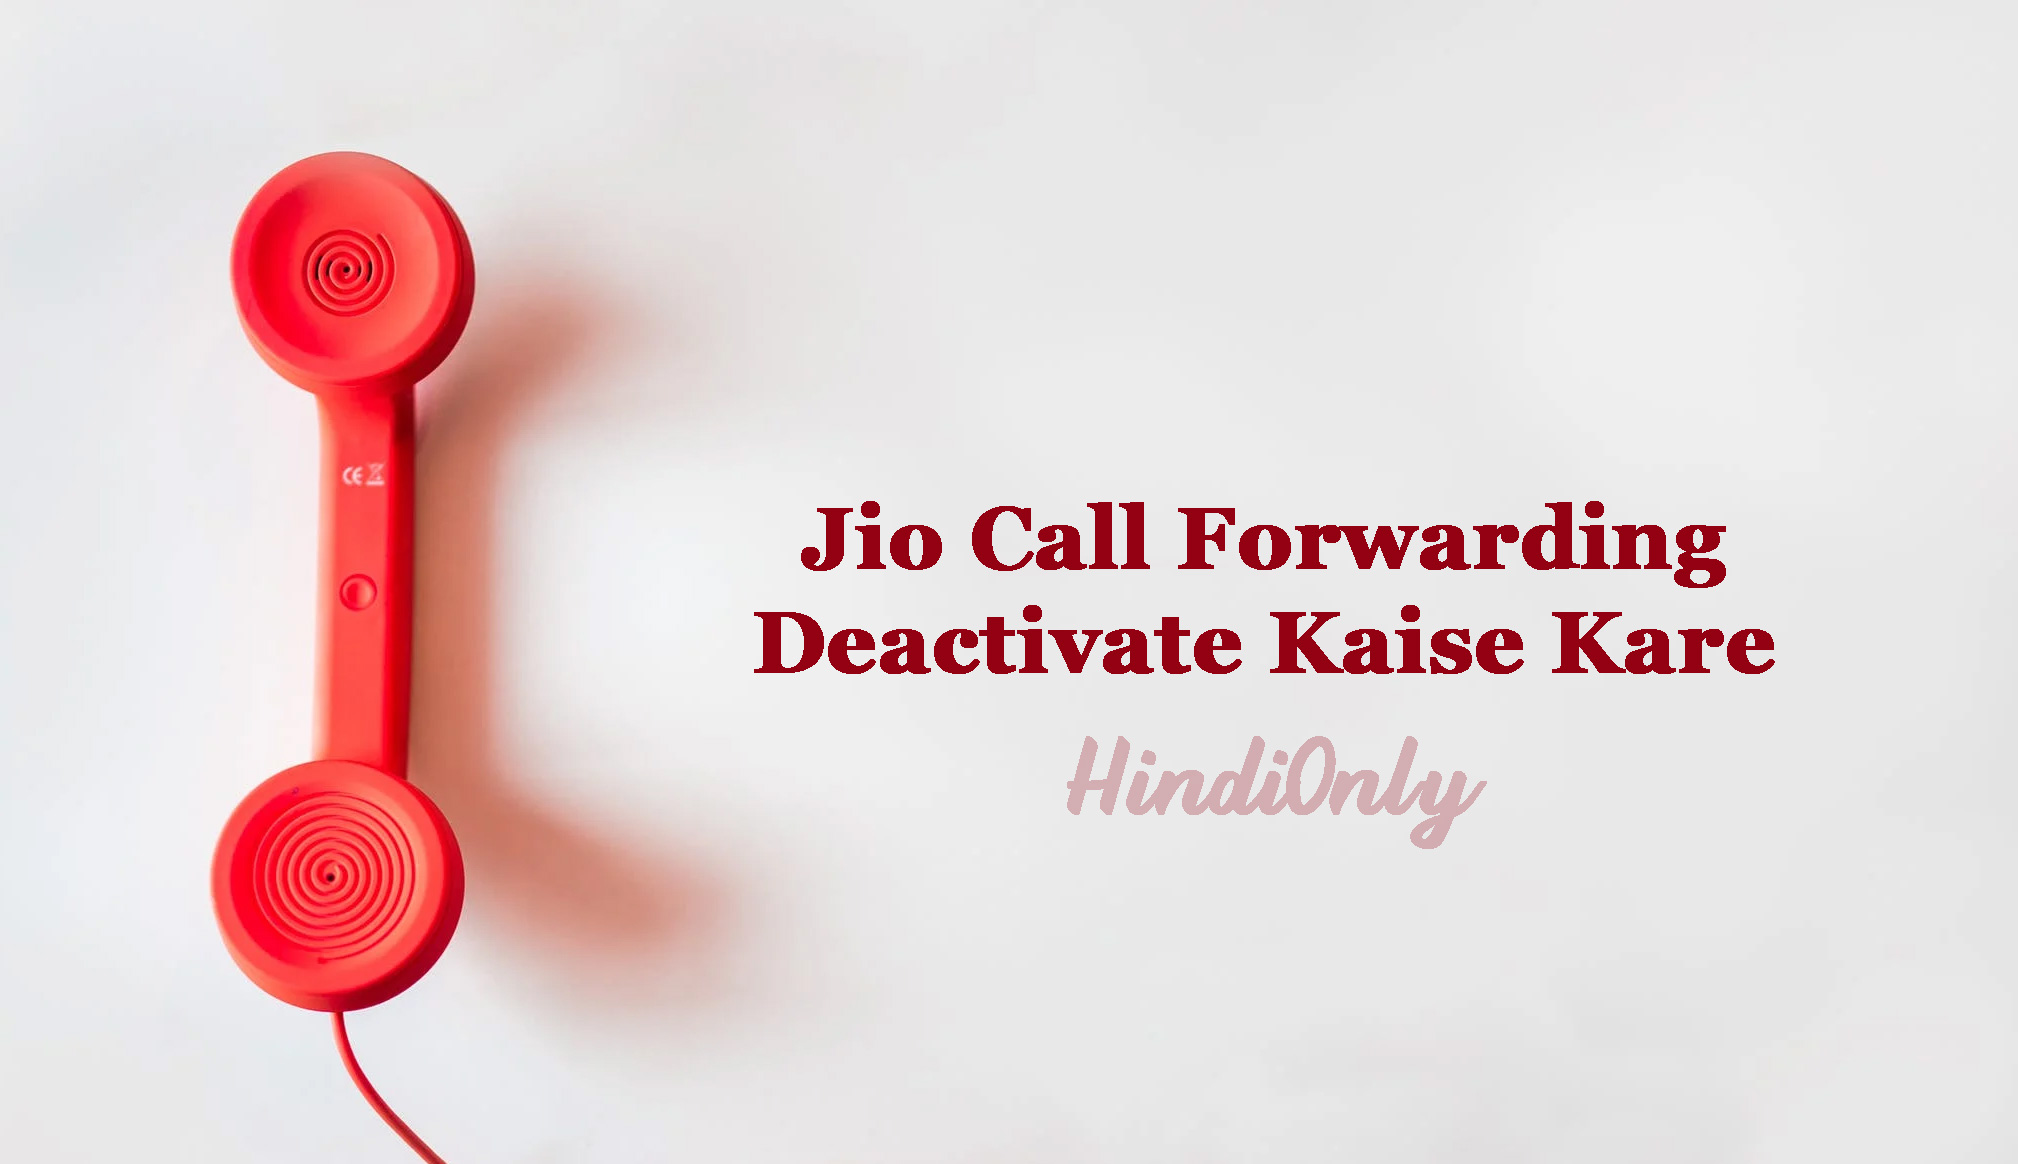 Jio Call Forwarding Deactivate Kaise Kare